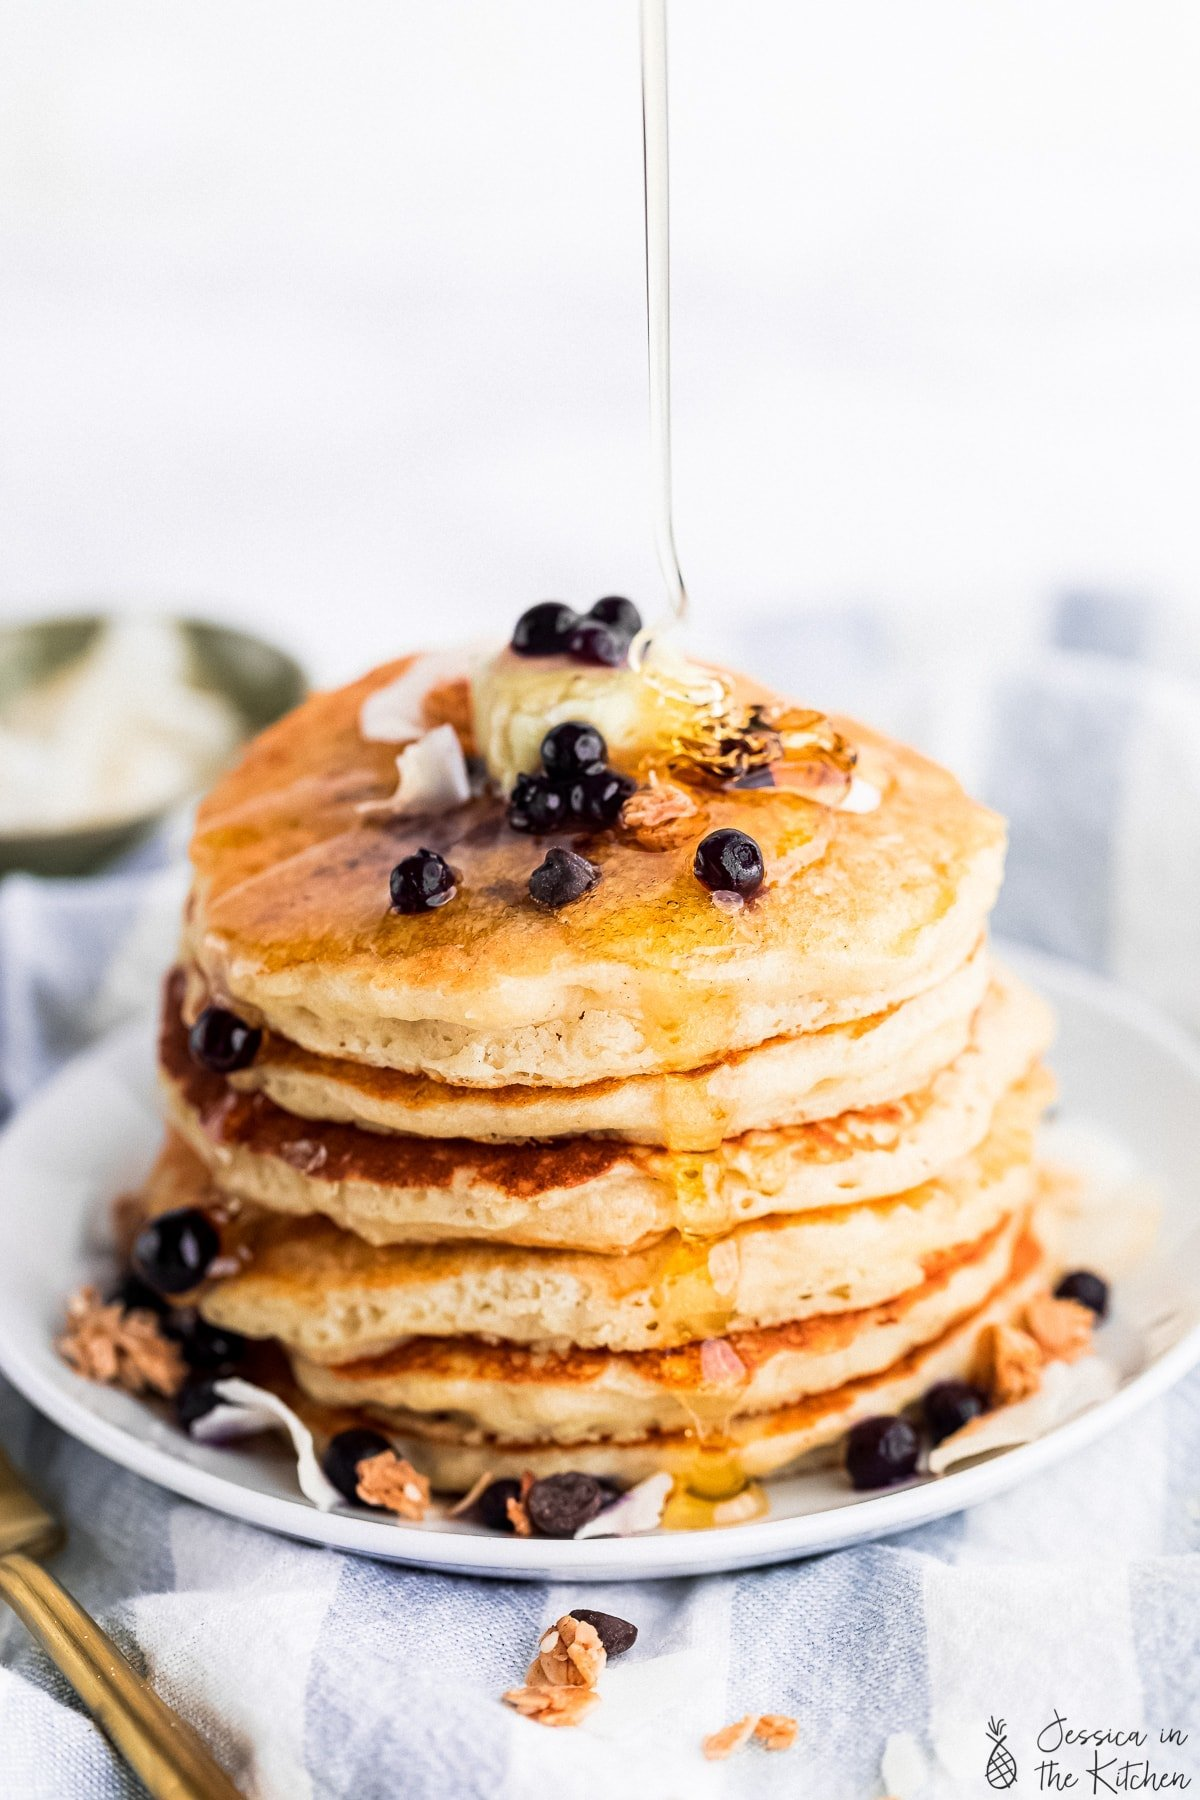 syrup pouring on top of a stack of pancakes